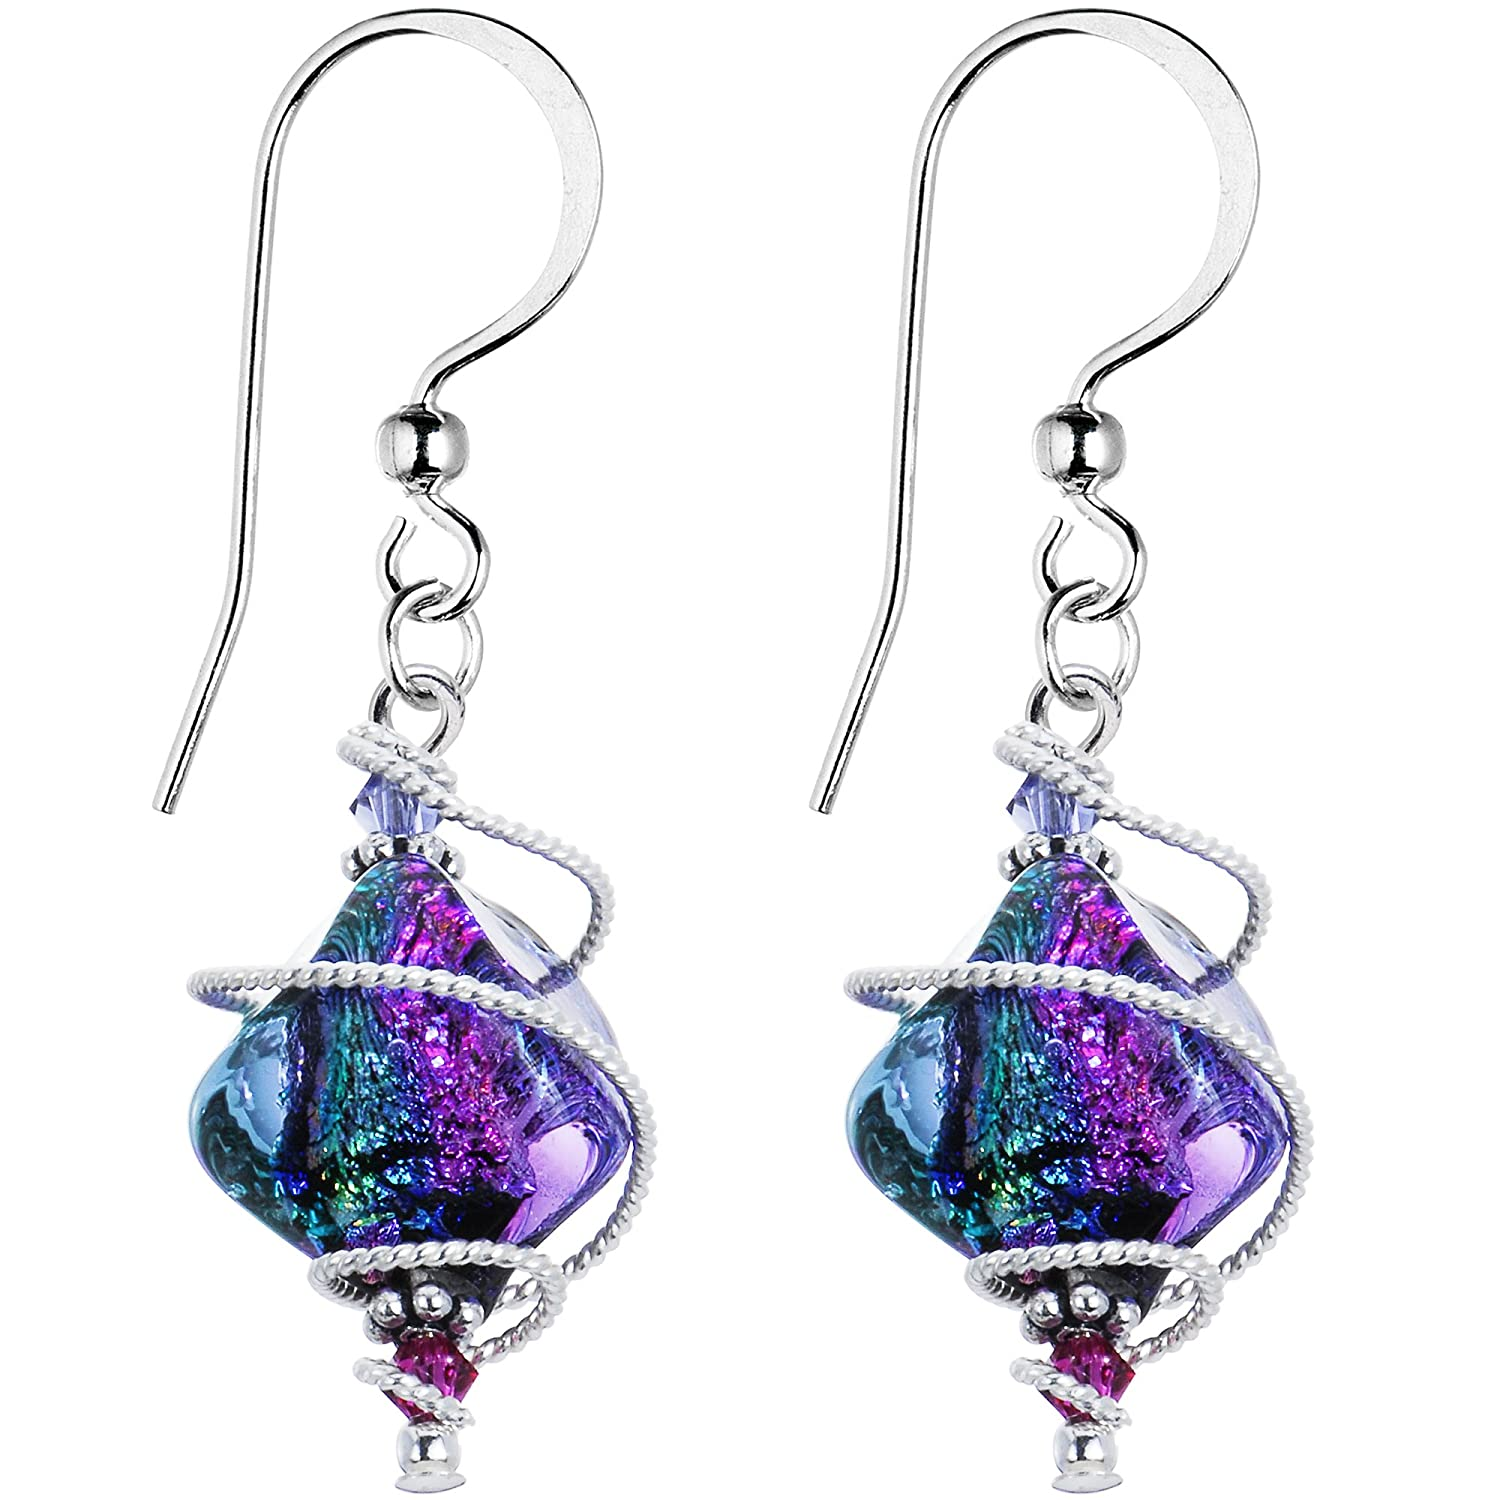 Body Candy Handcrafted 925 Silver Purple Dichroic Drop Dangle Earrings Created with Swarovski Crystals HC-1672